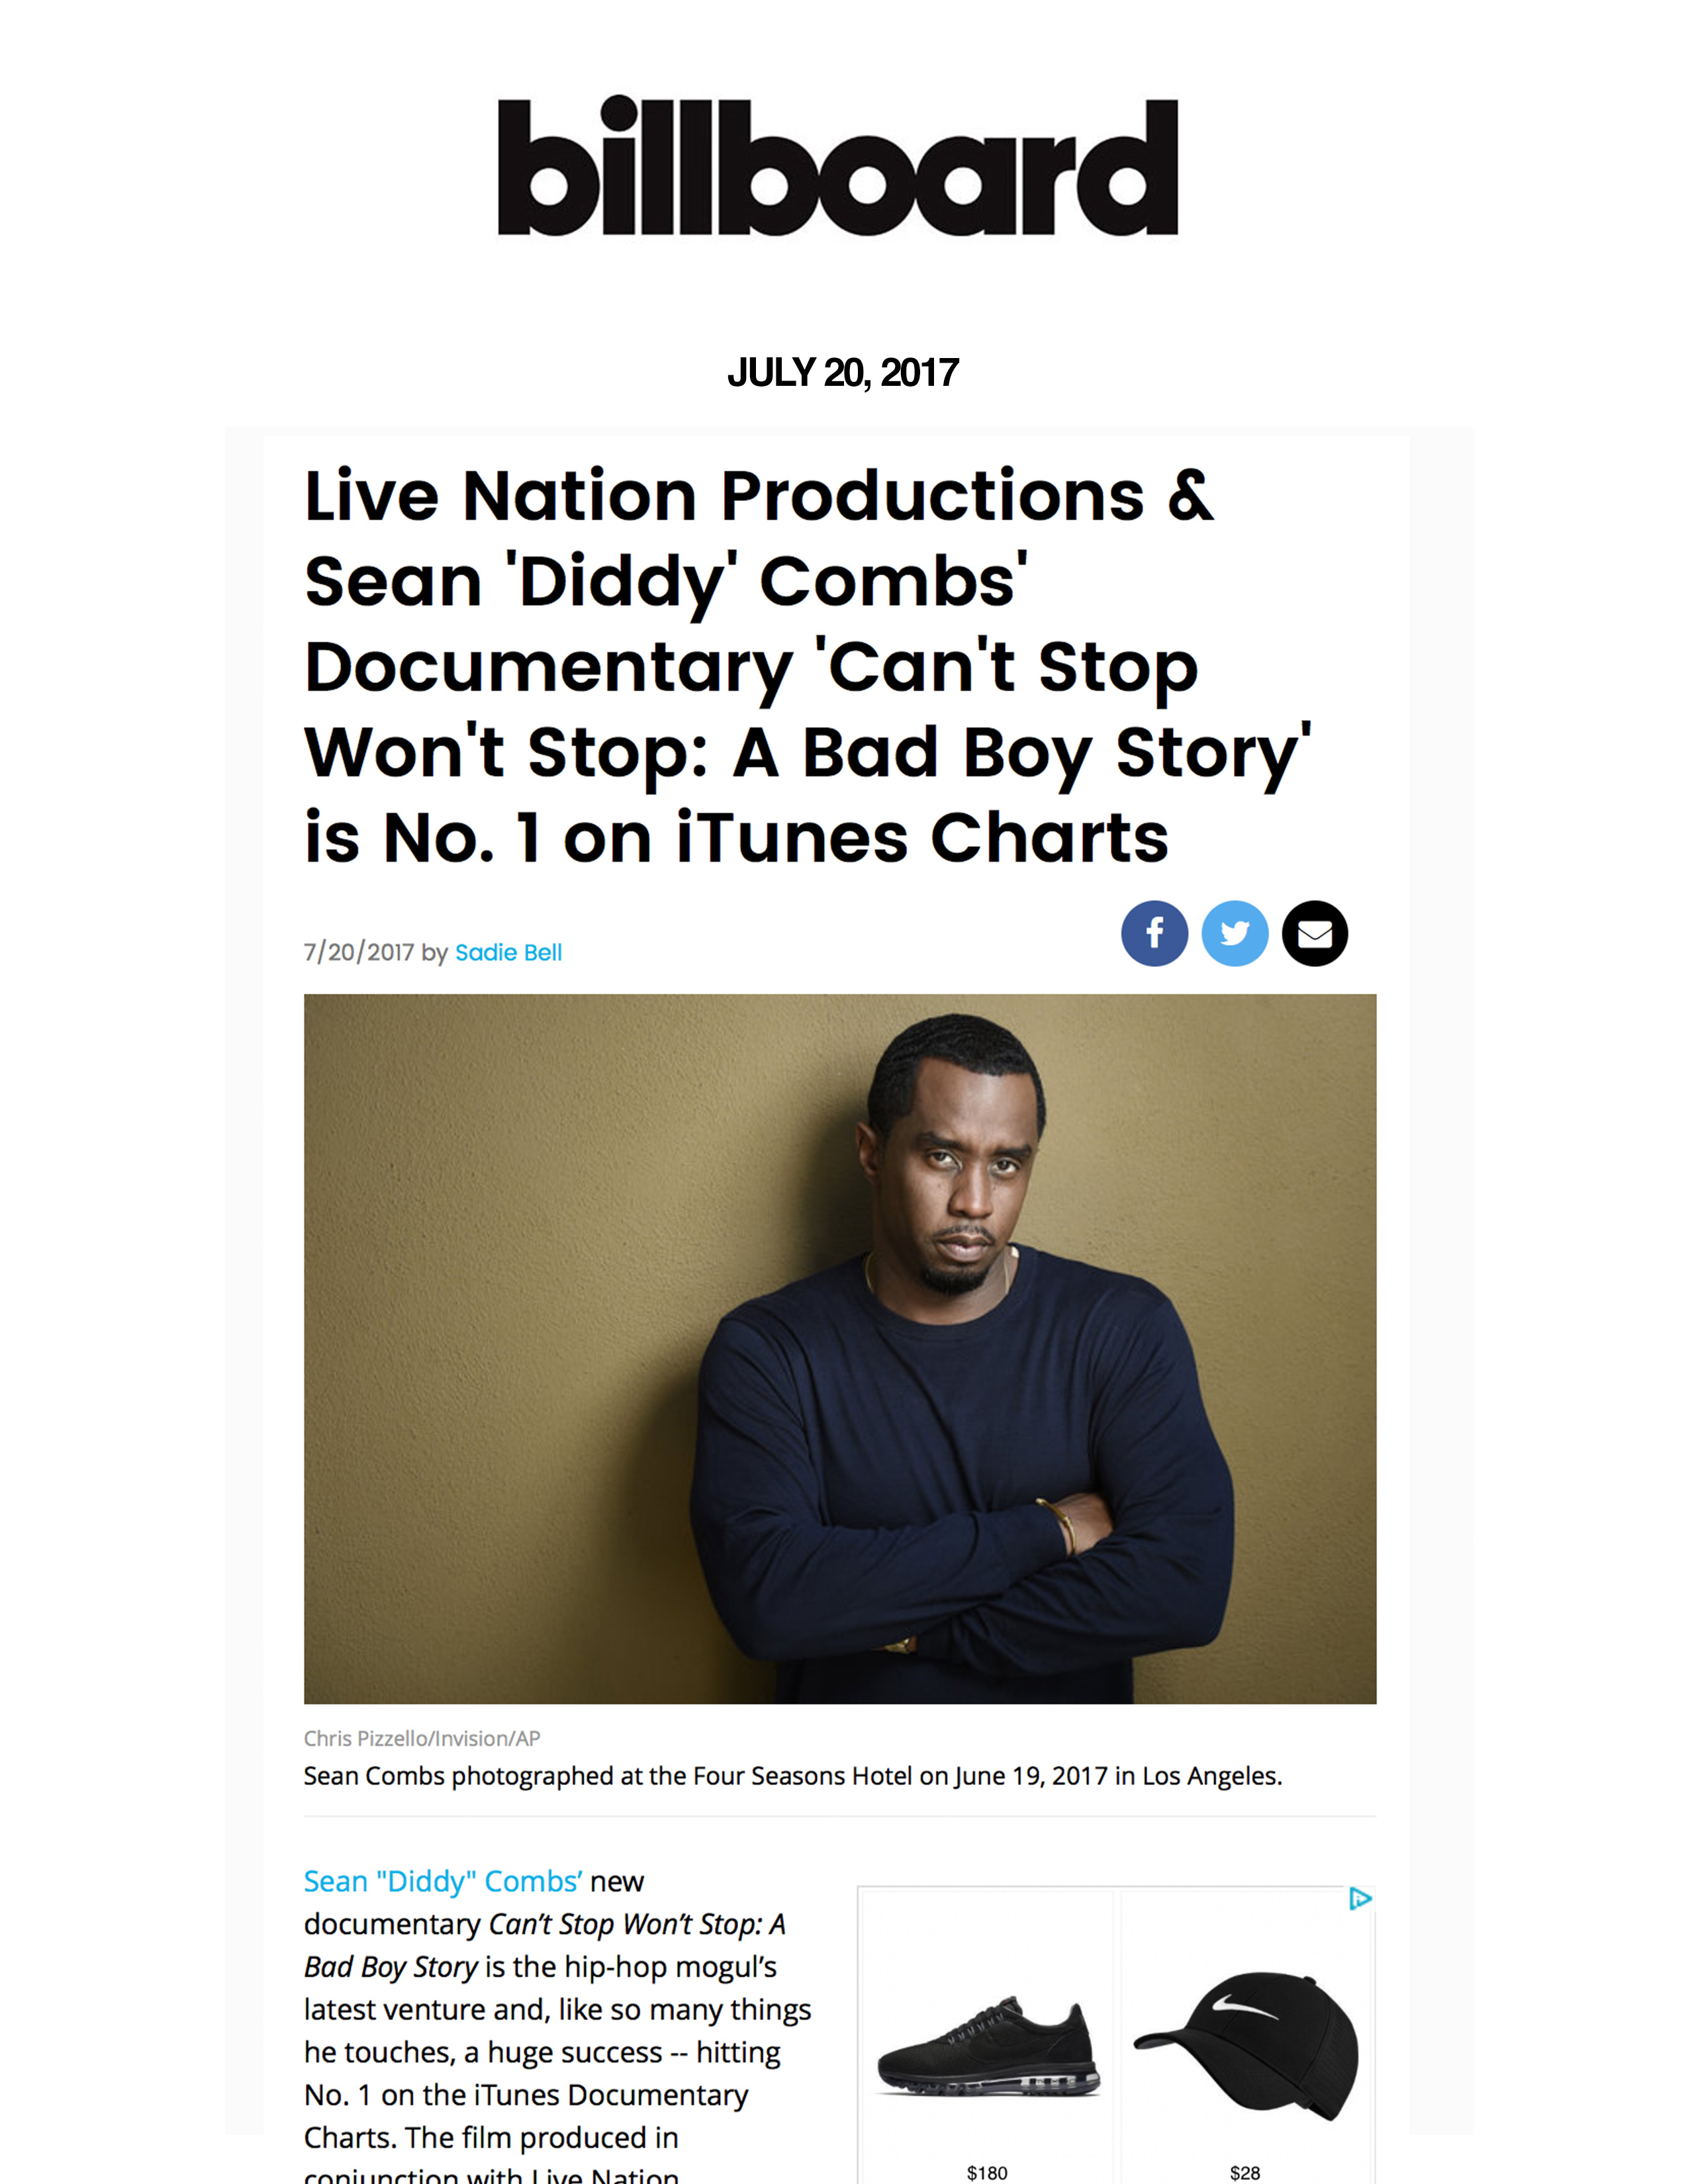 Combs Enterprises | Live Nation Productions & Sean 'Diddy' Combs